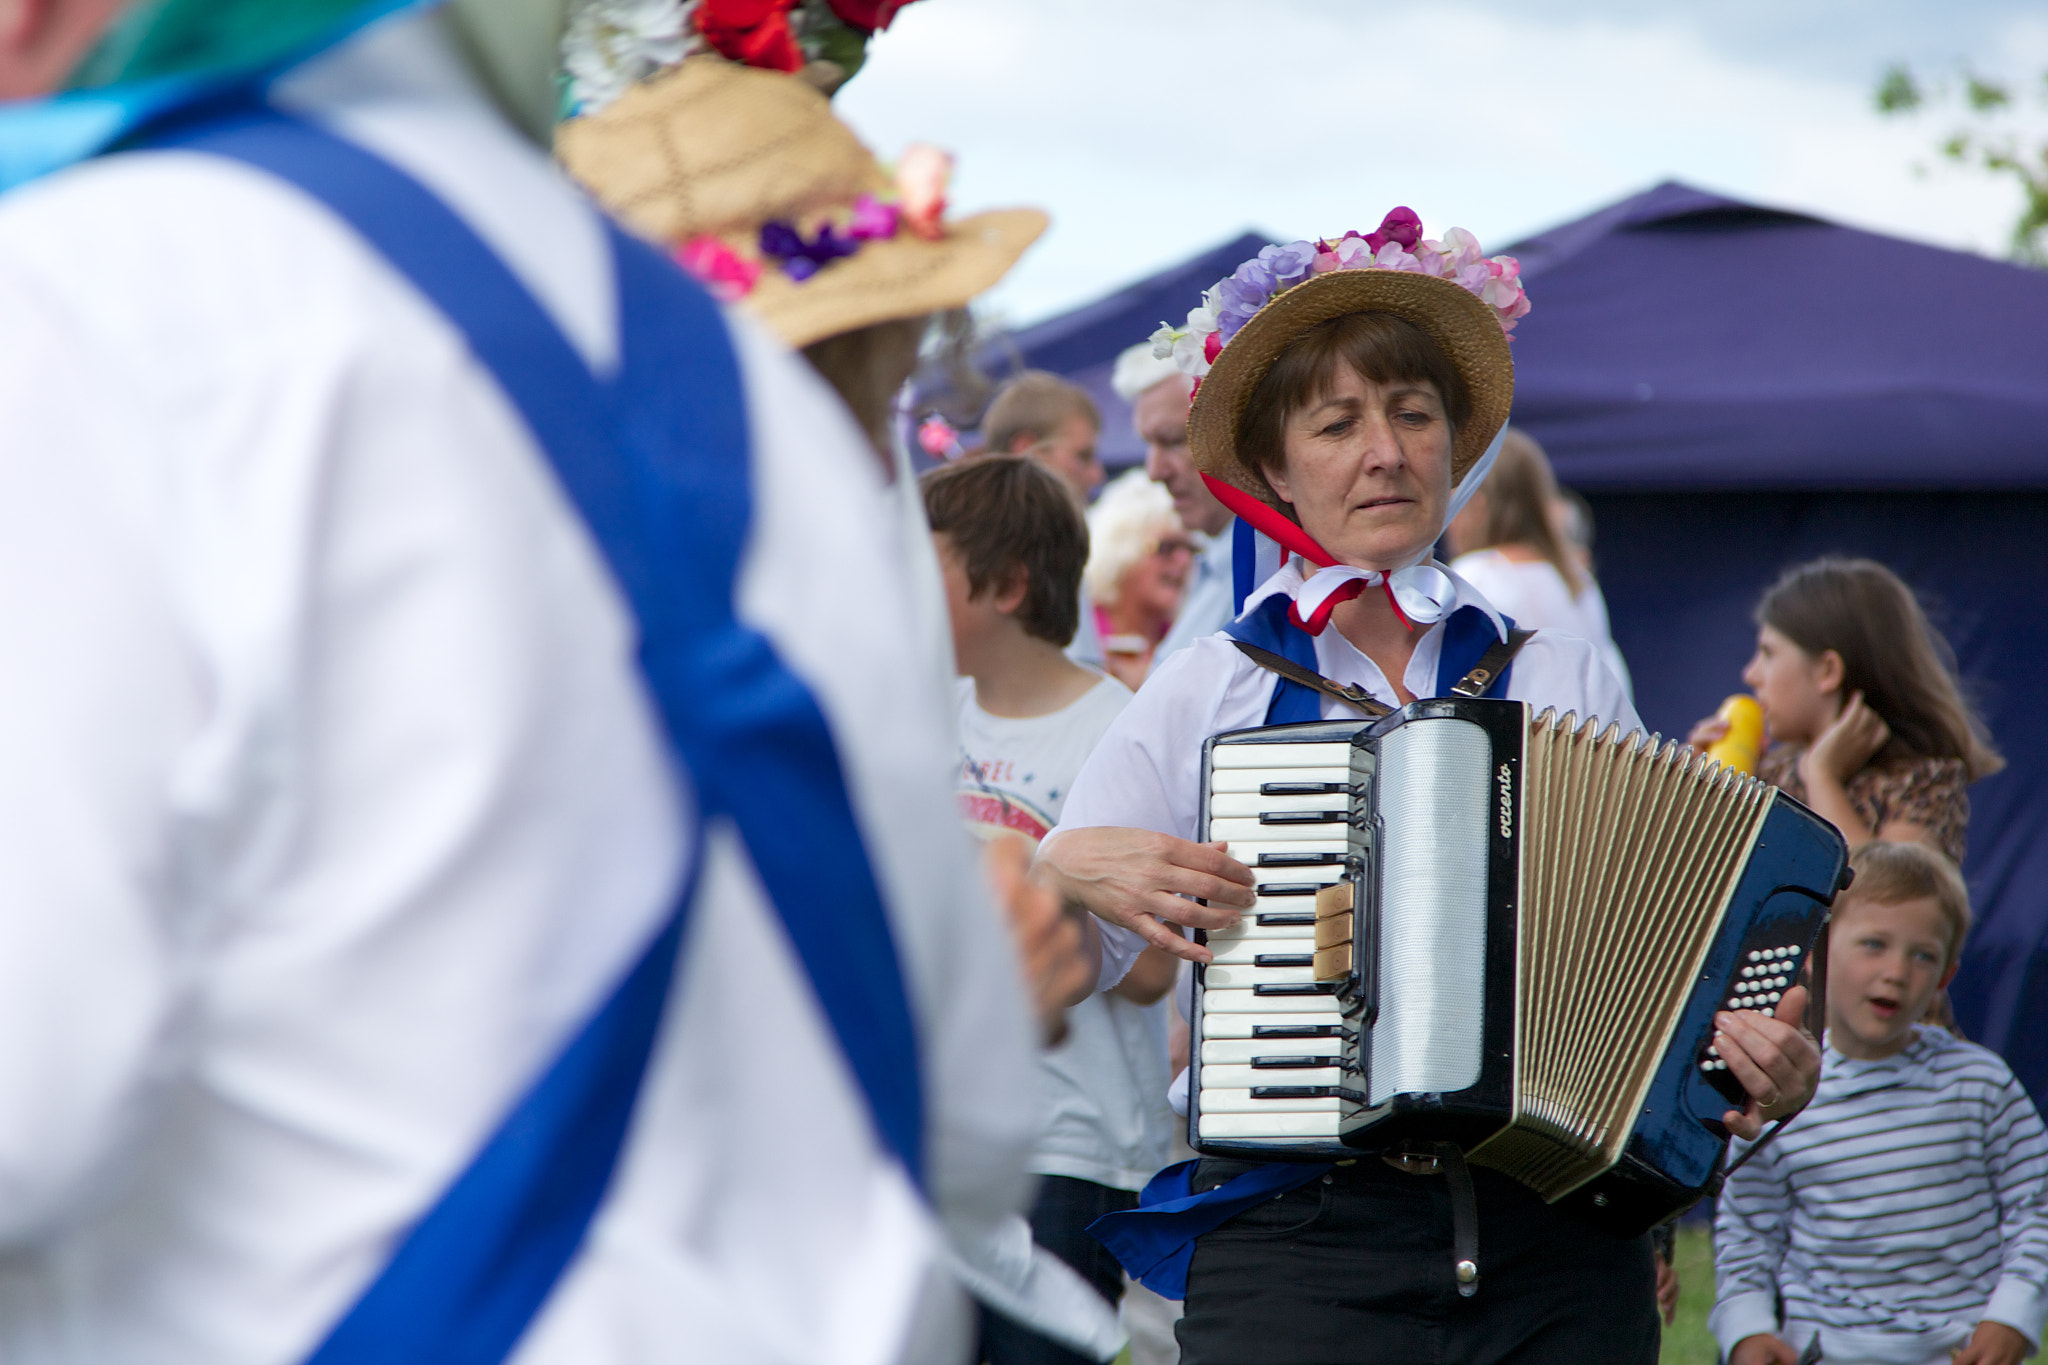 Photograph Morris Dancer Accordianist by Eoin Looney on 500px